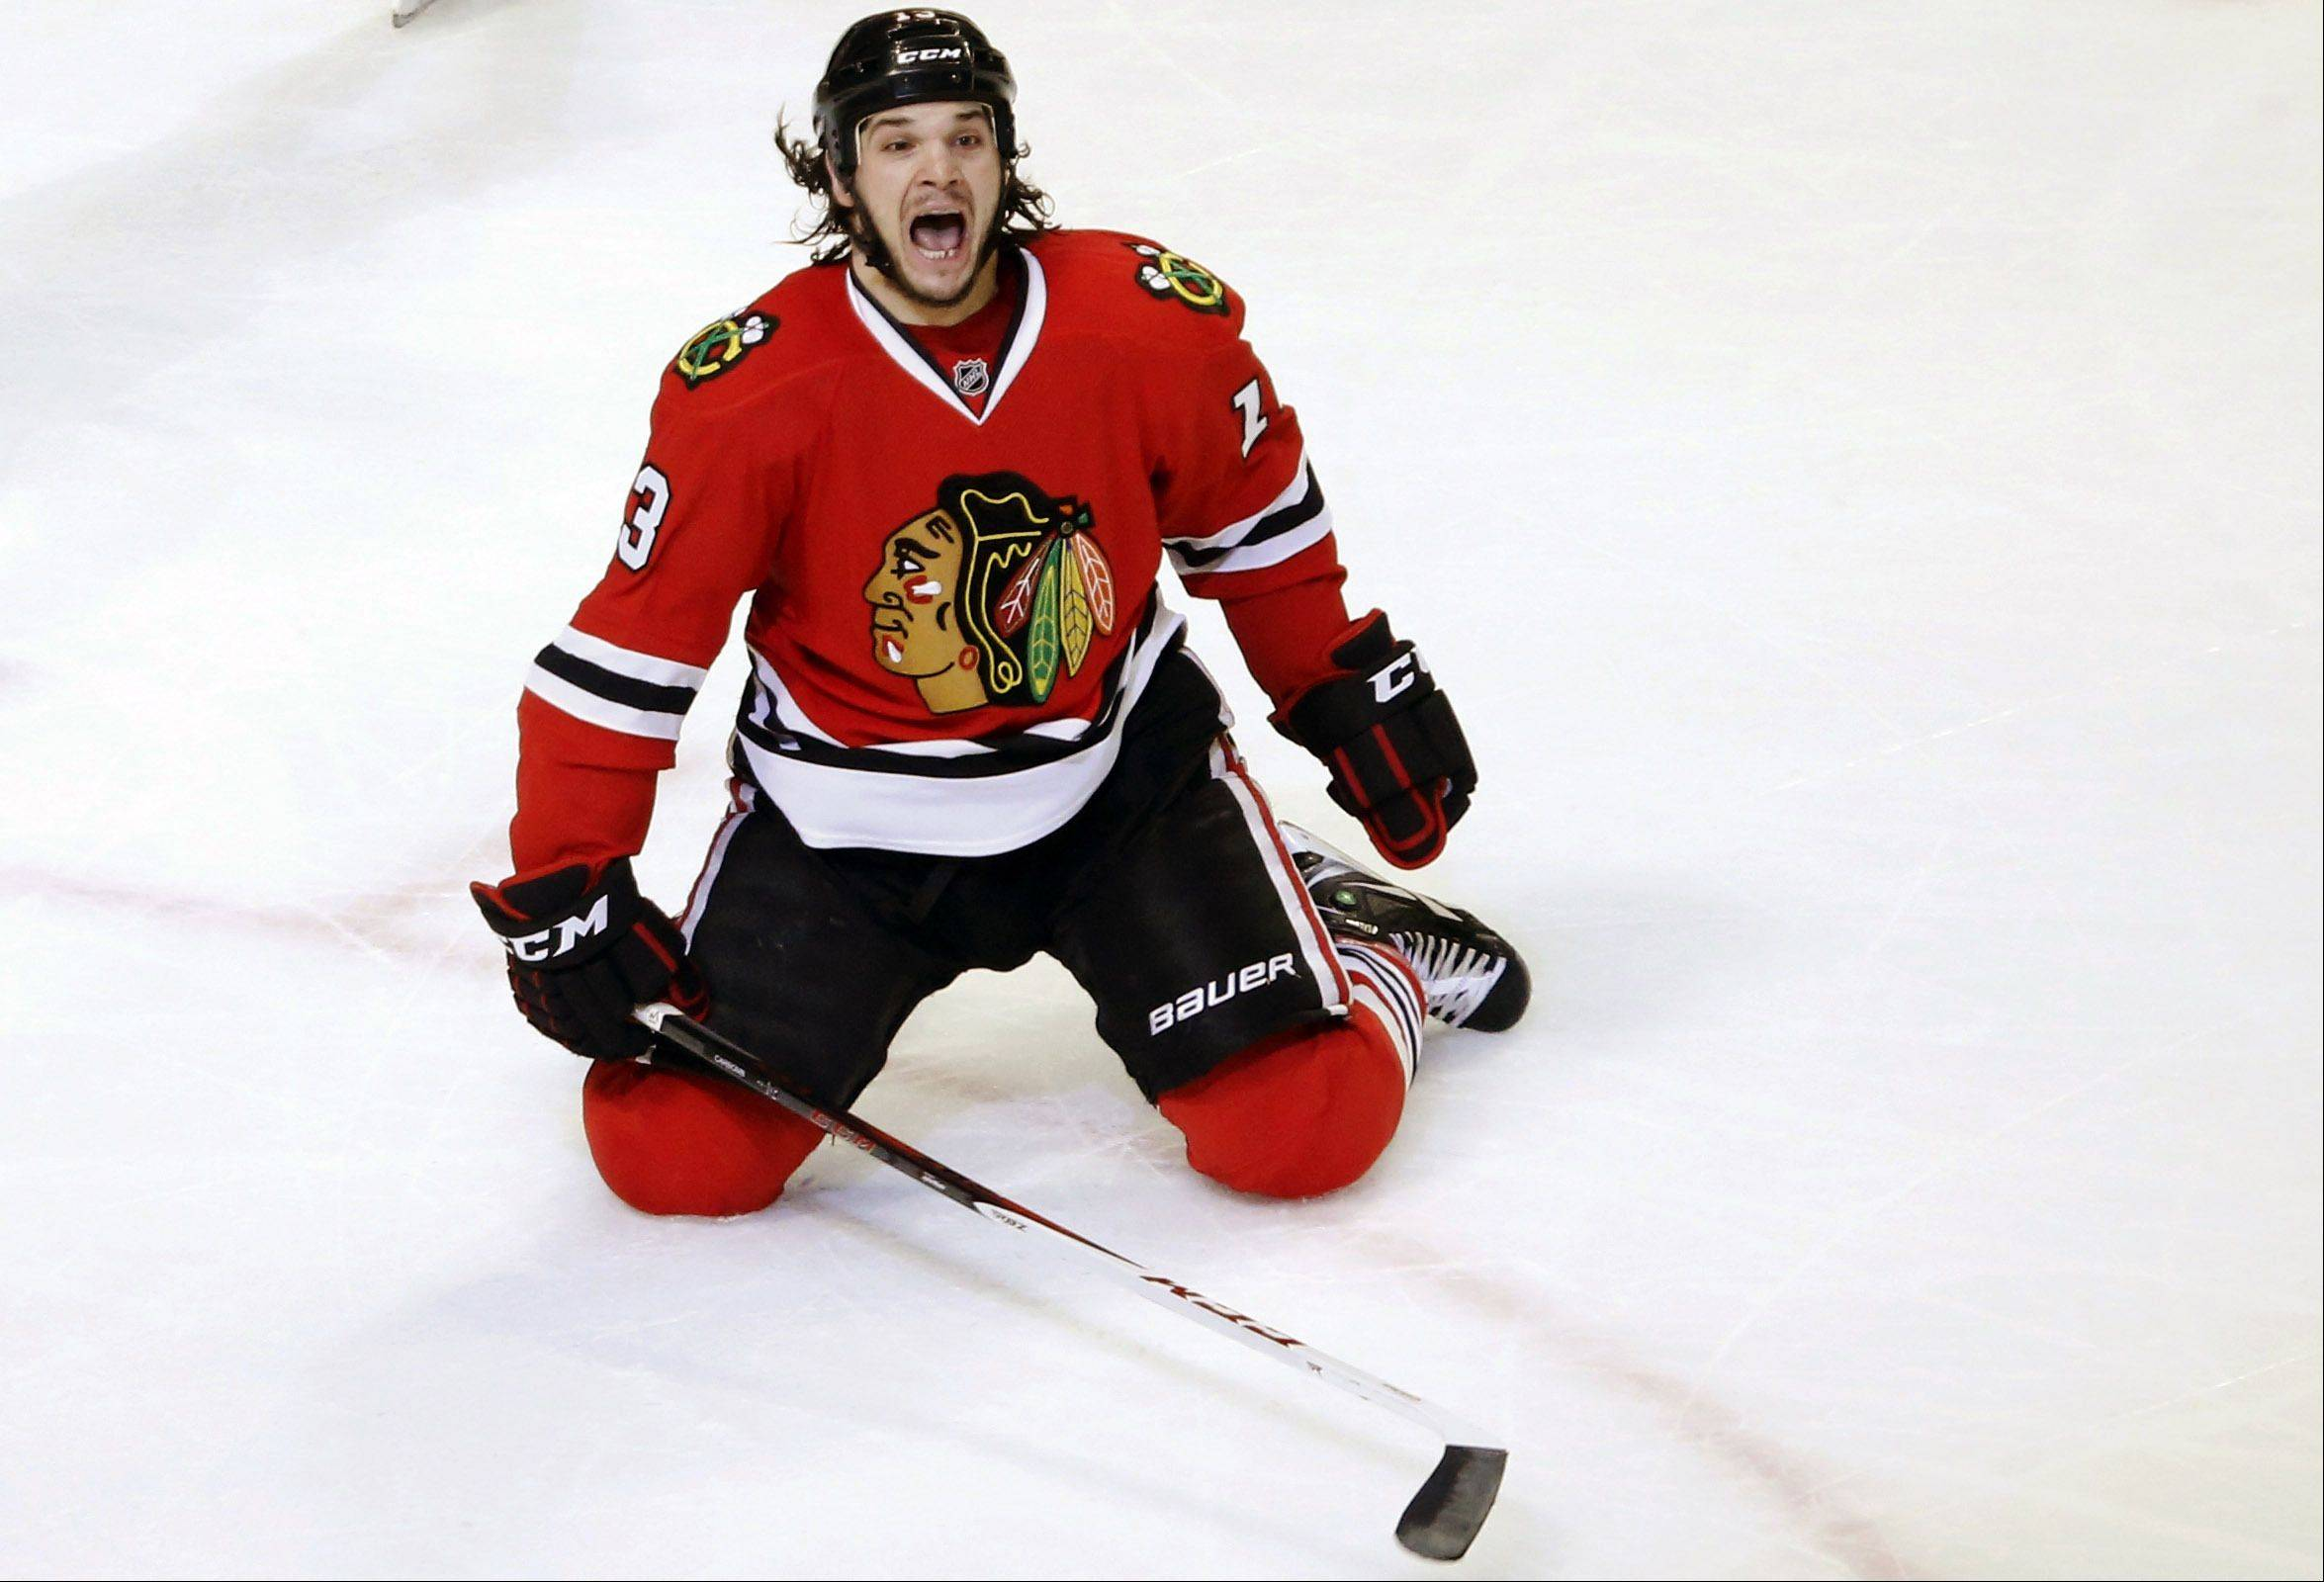 Chicago Blackhawks left wing Daniel Carcillo celebrates his winning goal.